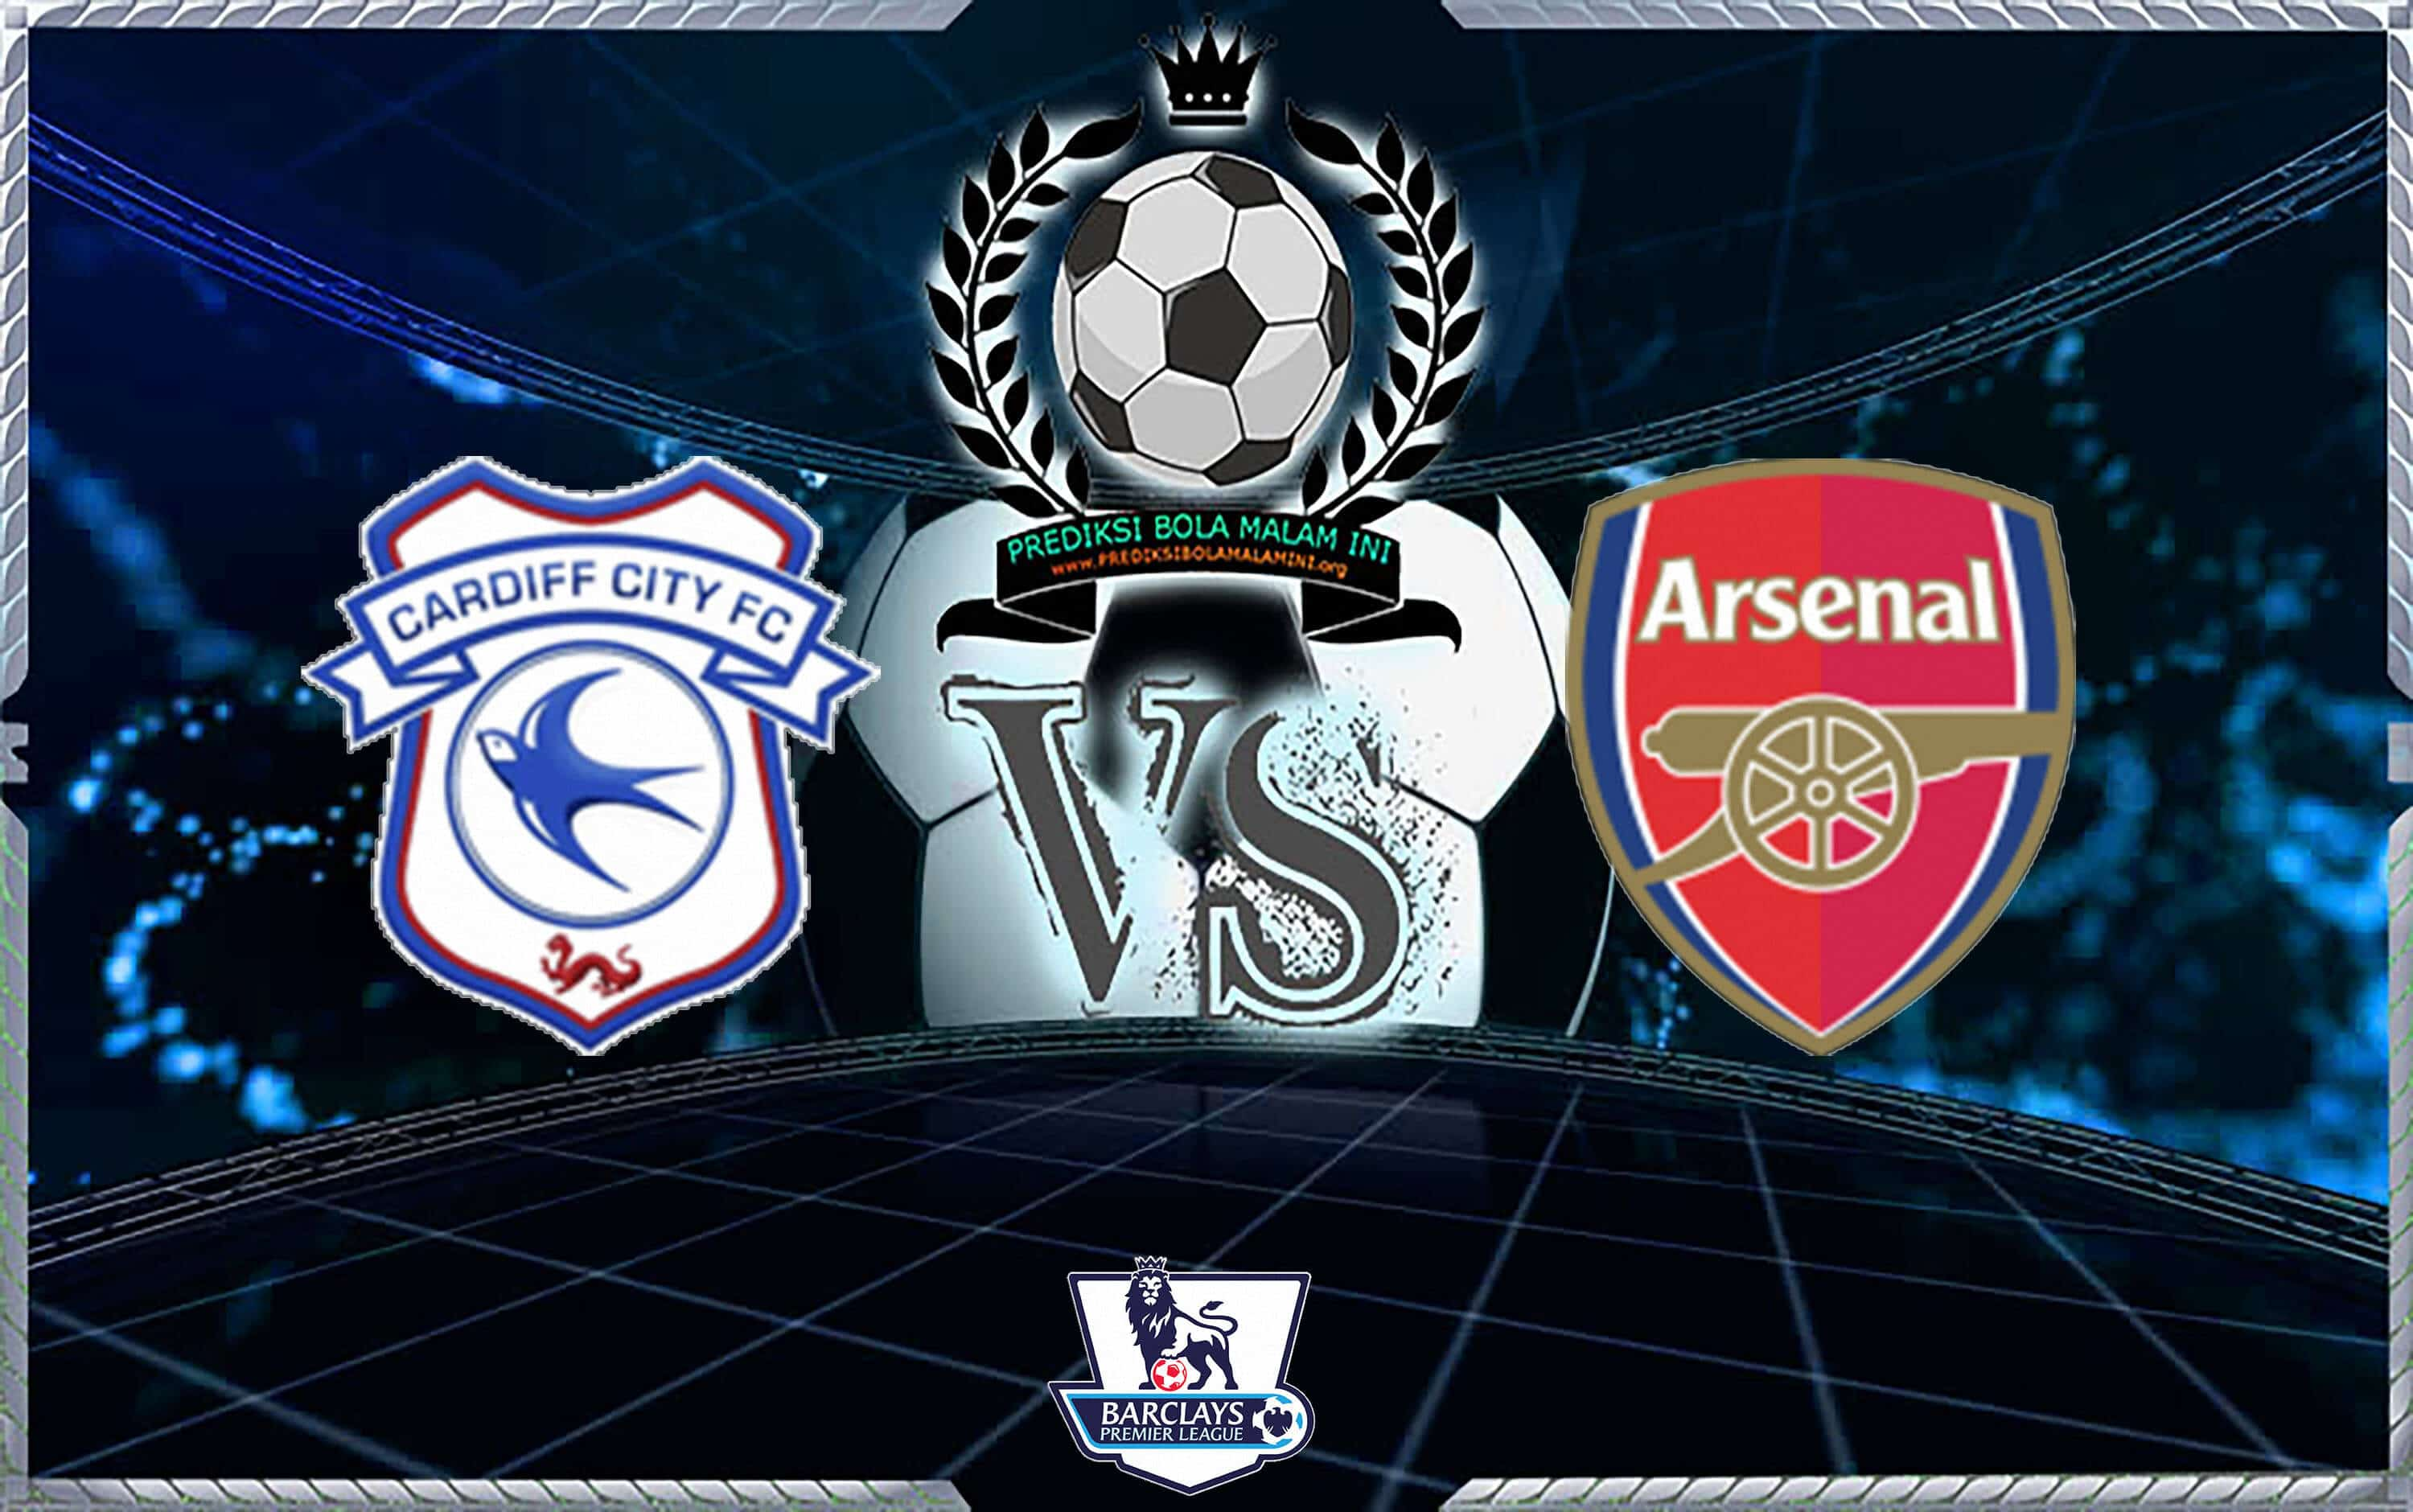 Predicks Skor CARDIFF CITY Vs ARSENAL 2 September 2018 [macarere9002] Pasazan Predicks Bolah KOTA CARDIFF Vs ARSENAL, Prediktor BOLLA CARDIFF KOTA VS ARSENAL, BURSA TAROIN CARDIFF KOTA VS ARSENAL, Predicti Skor CARDIFF KOTA VS ARSENAL, Pertandingan Prediki CARDIFF KOTA VS ARSENAL , Hasil Skor CARDIFF CITY Vs ARSENAL CARDIFF CITY VS ARSENAL </strong></span> – <strong> yang akan di adakan pada tanggal 2 September 2018 Pada Pukul 19: 30 WIB DI Stadion Cardiff City Stadium (Cardiff (Caerdydd)) </strong></p> <p><a href=